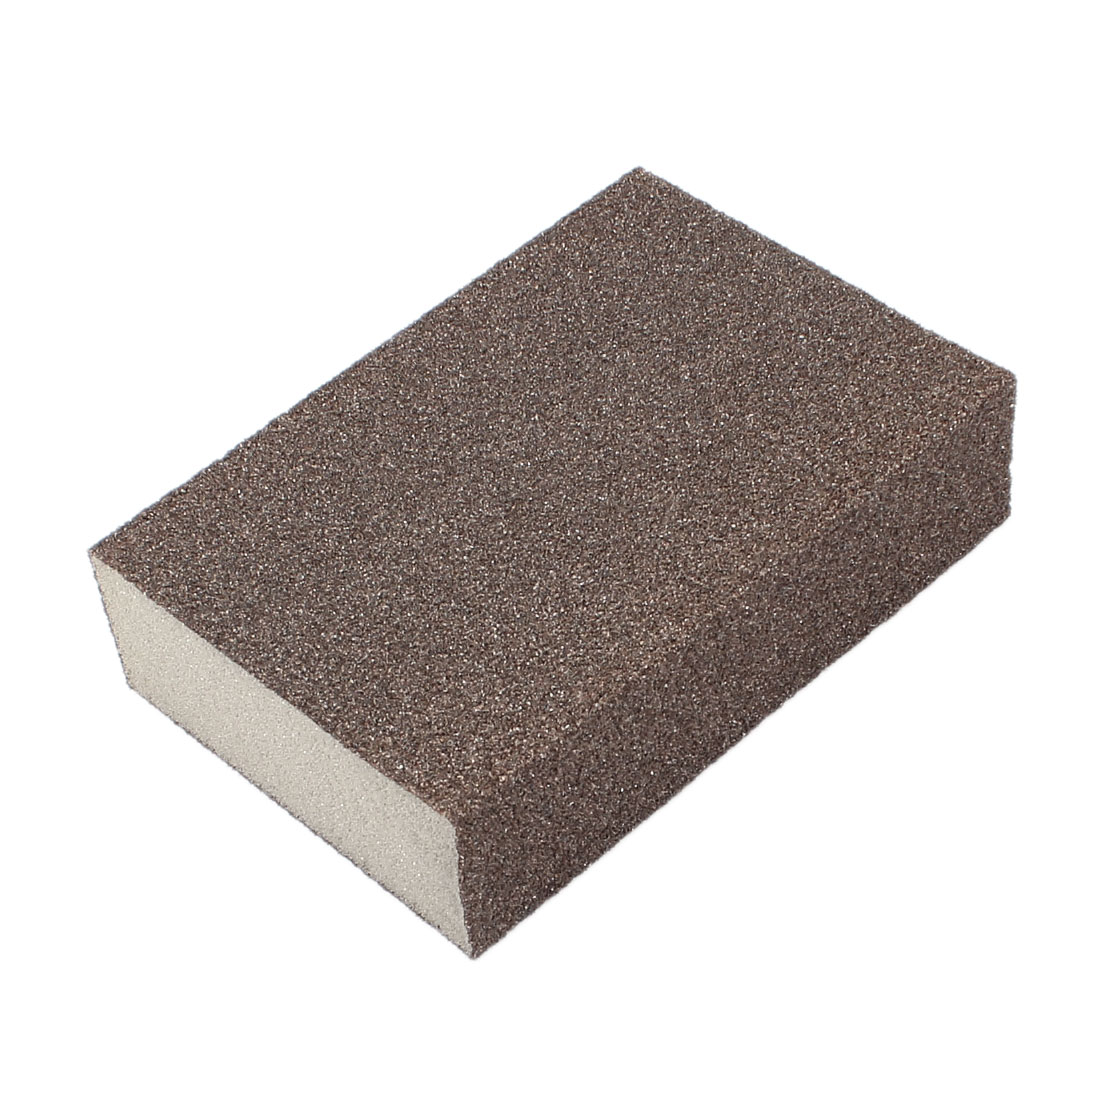 Rectangular Rough Grinding Sanding Sponge Pad Block100mm x 70mm x 25mm